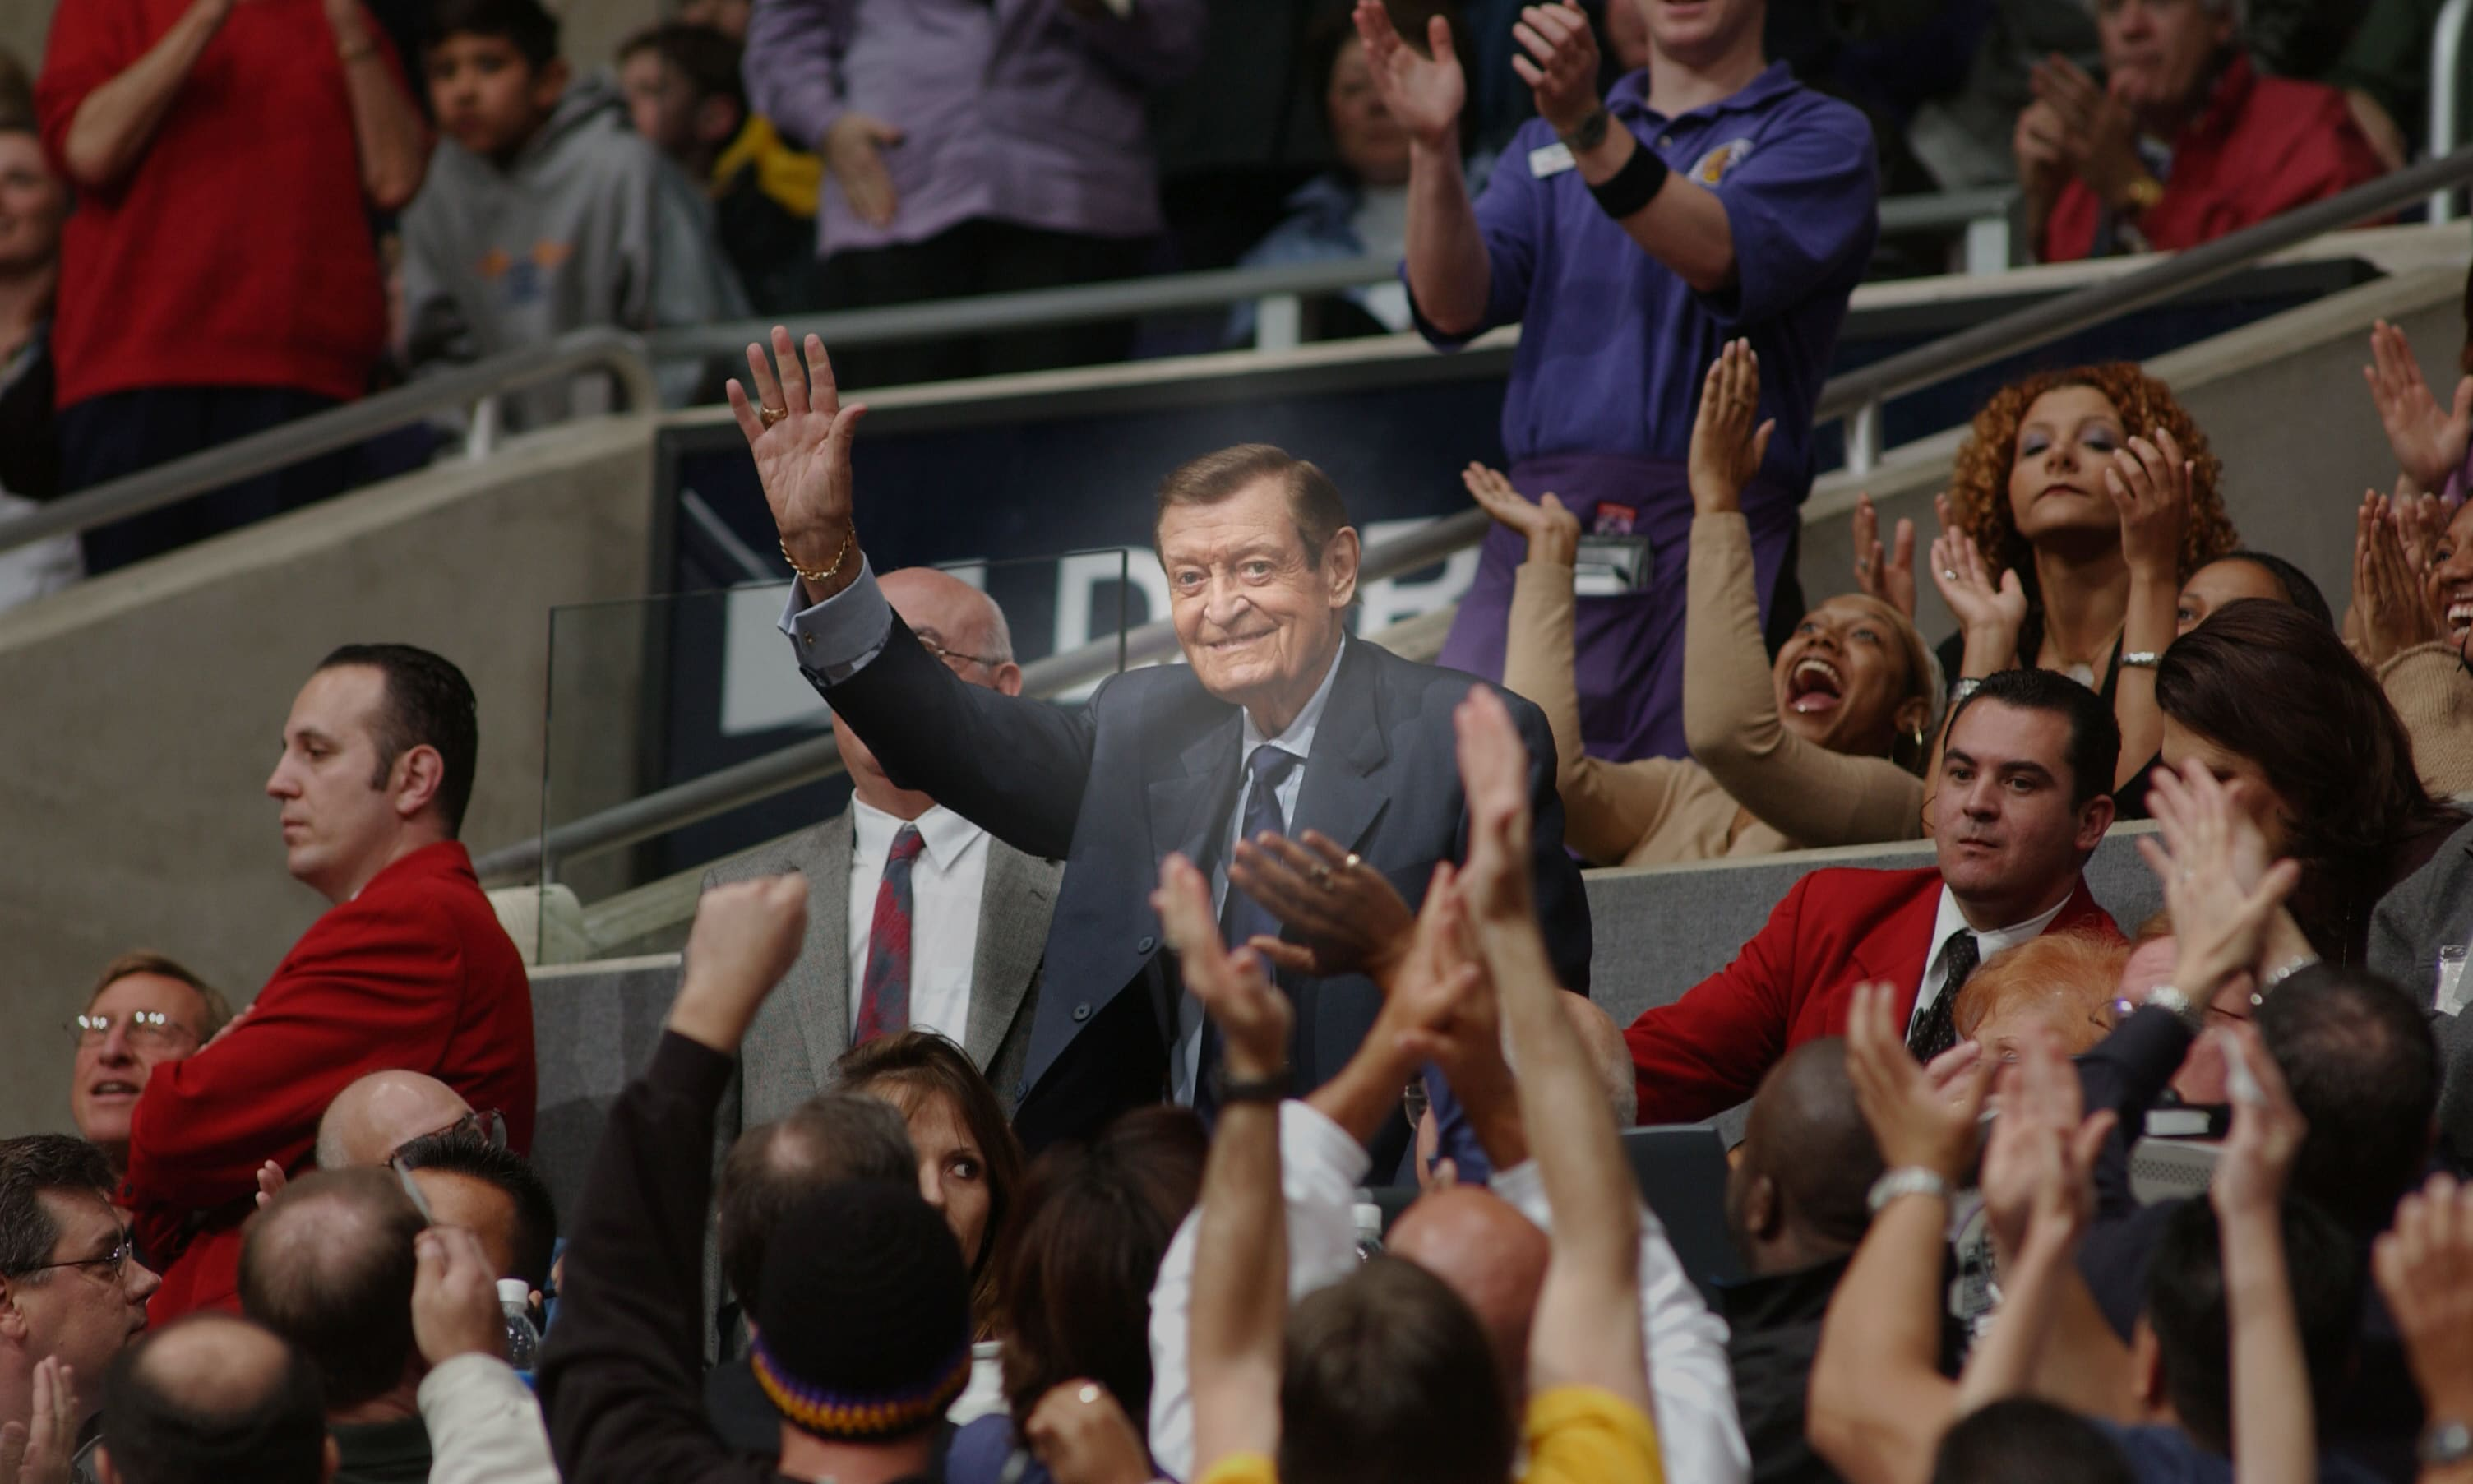 Chick Hearn waves at the crowd